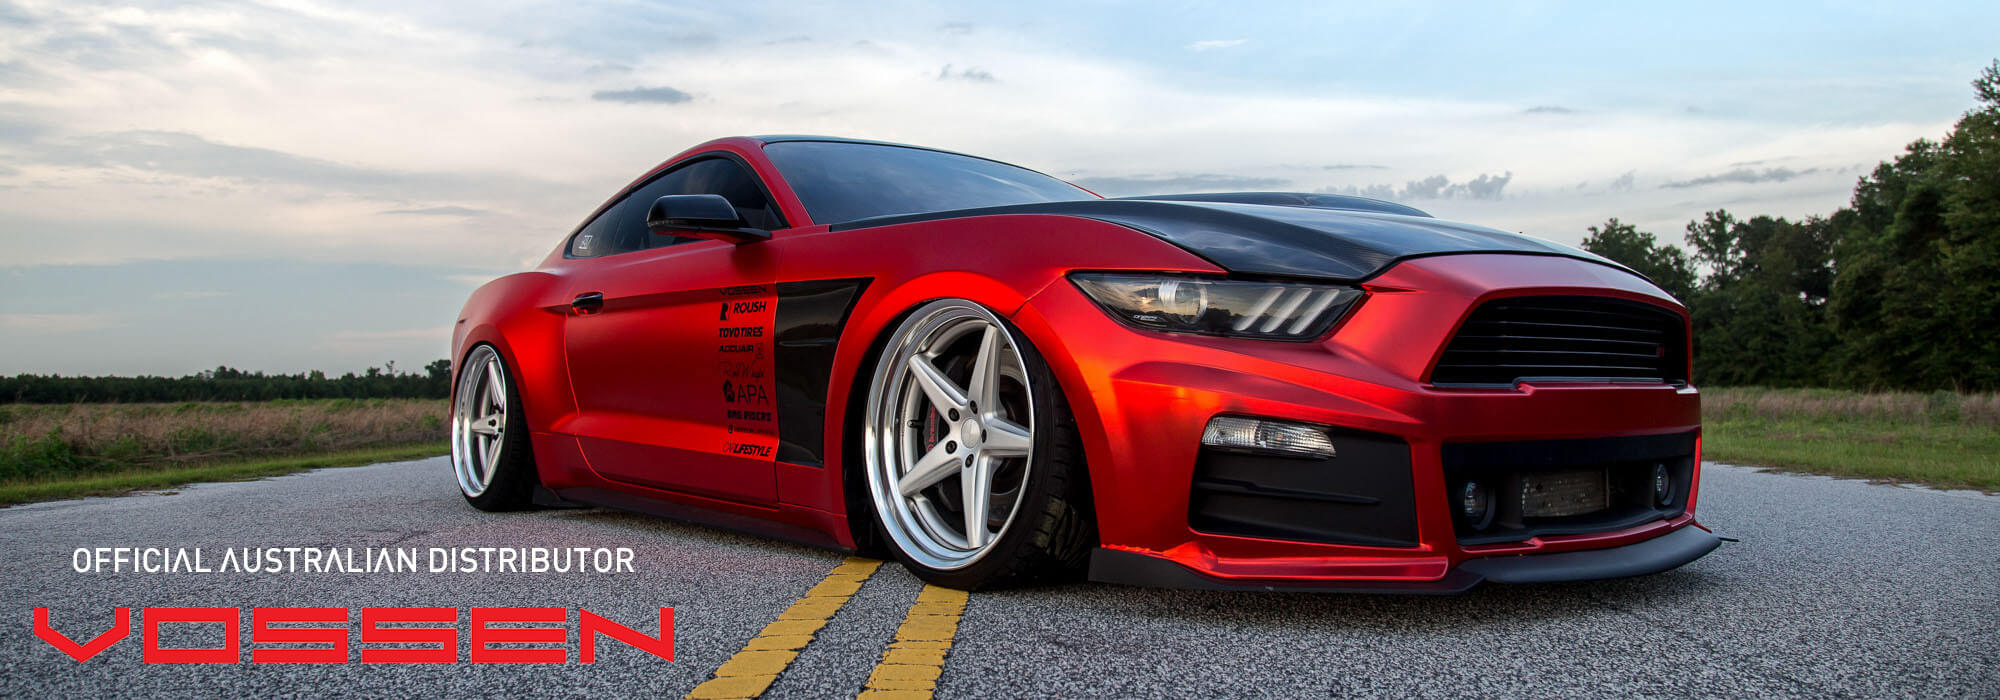 Vossen Wheels on Ford Mustang